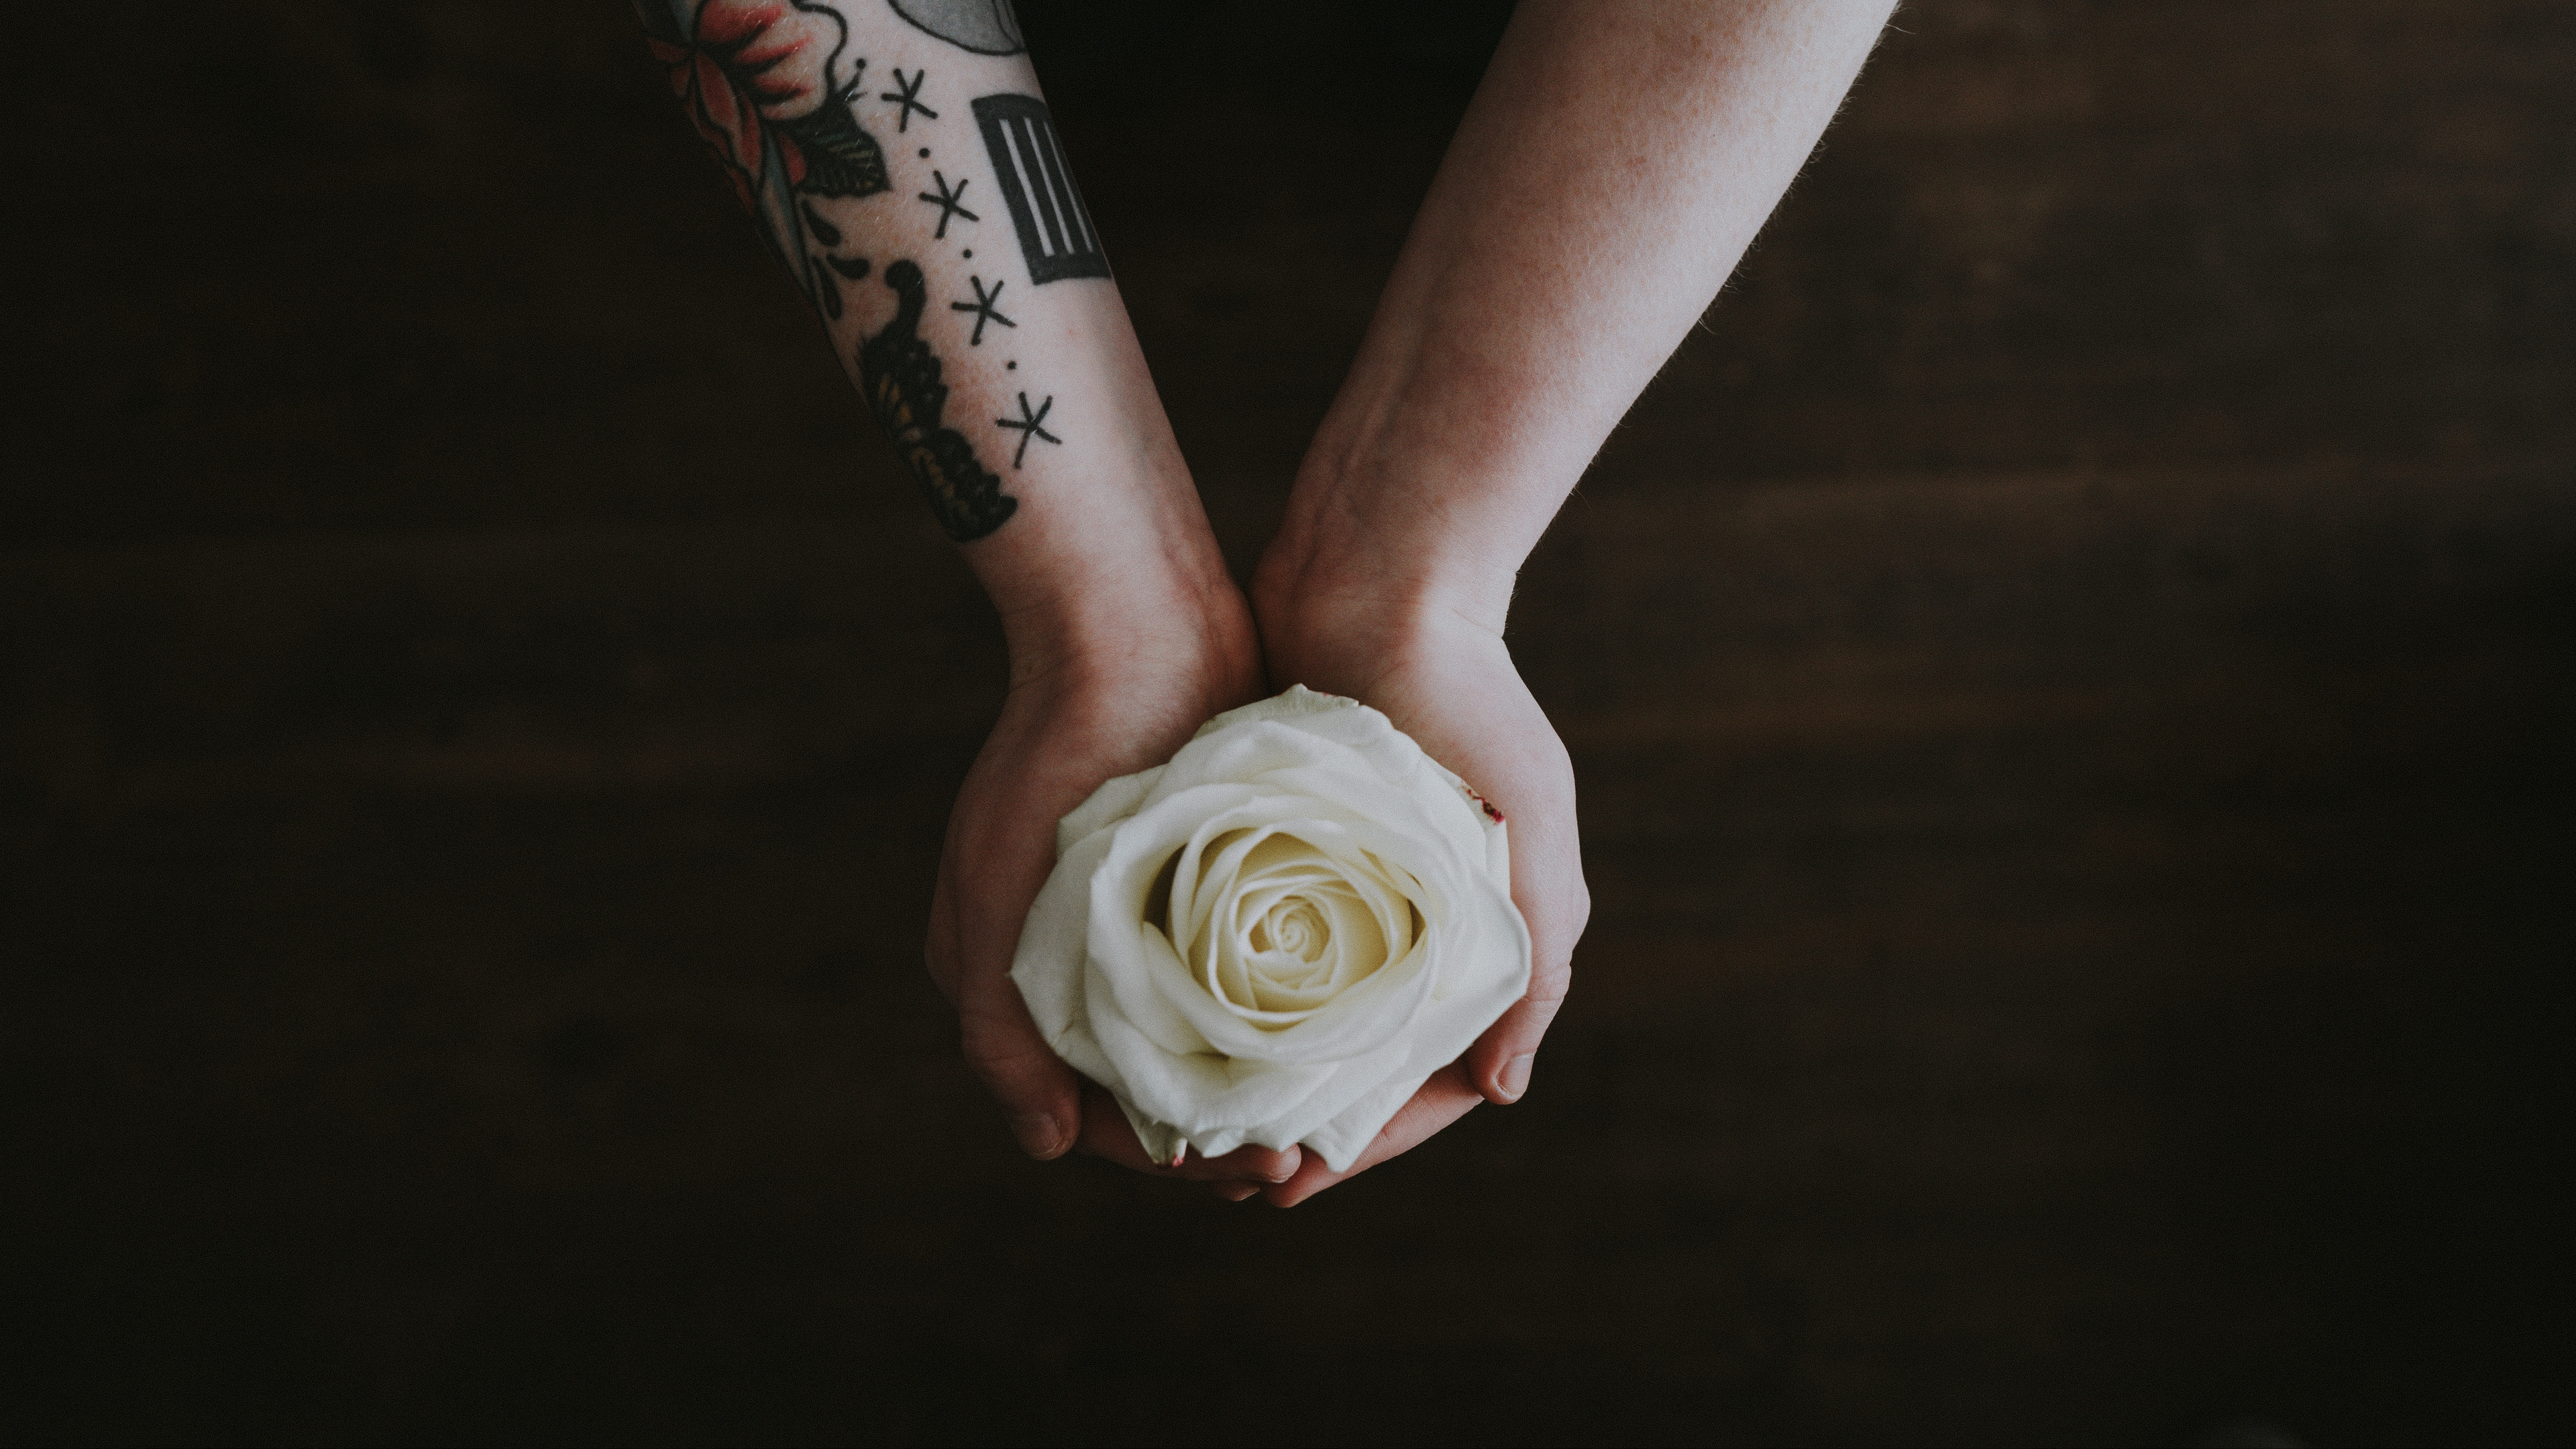 rose hands tattoo flower bud 4k 1540064114 - rose, hands, tattoo, flower, bud 4k - tattoo, Rose, Hands